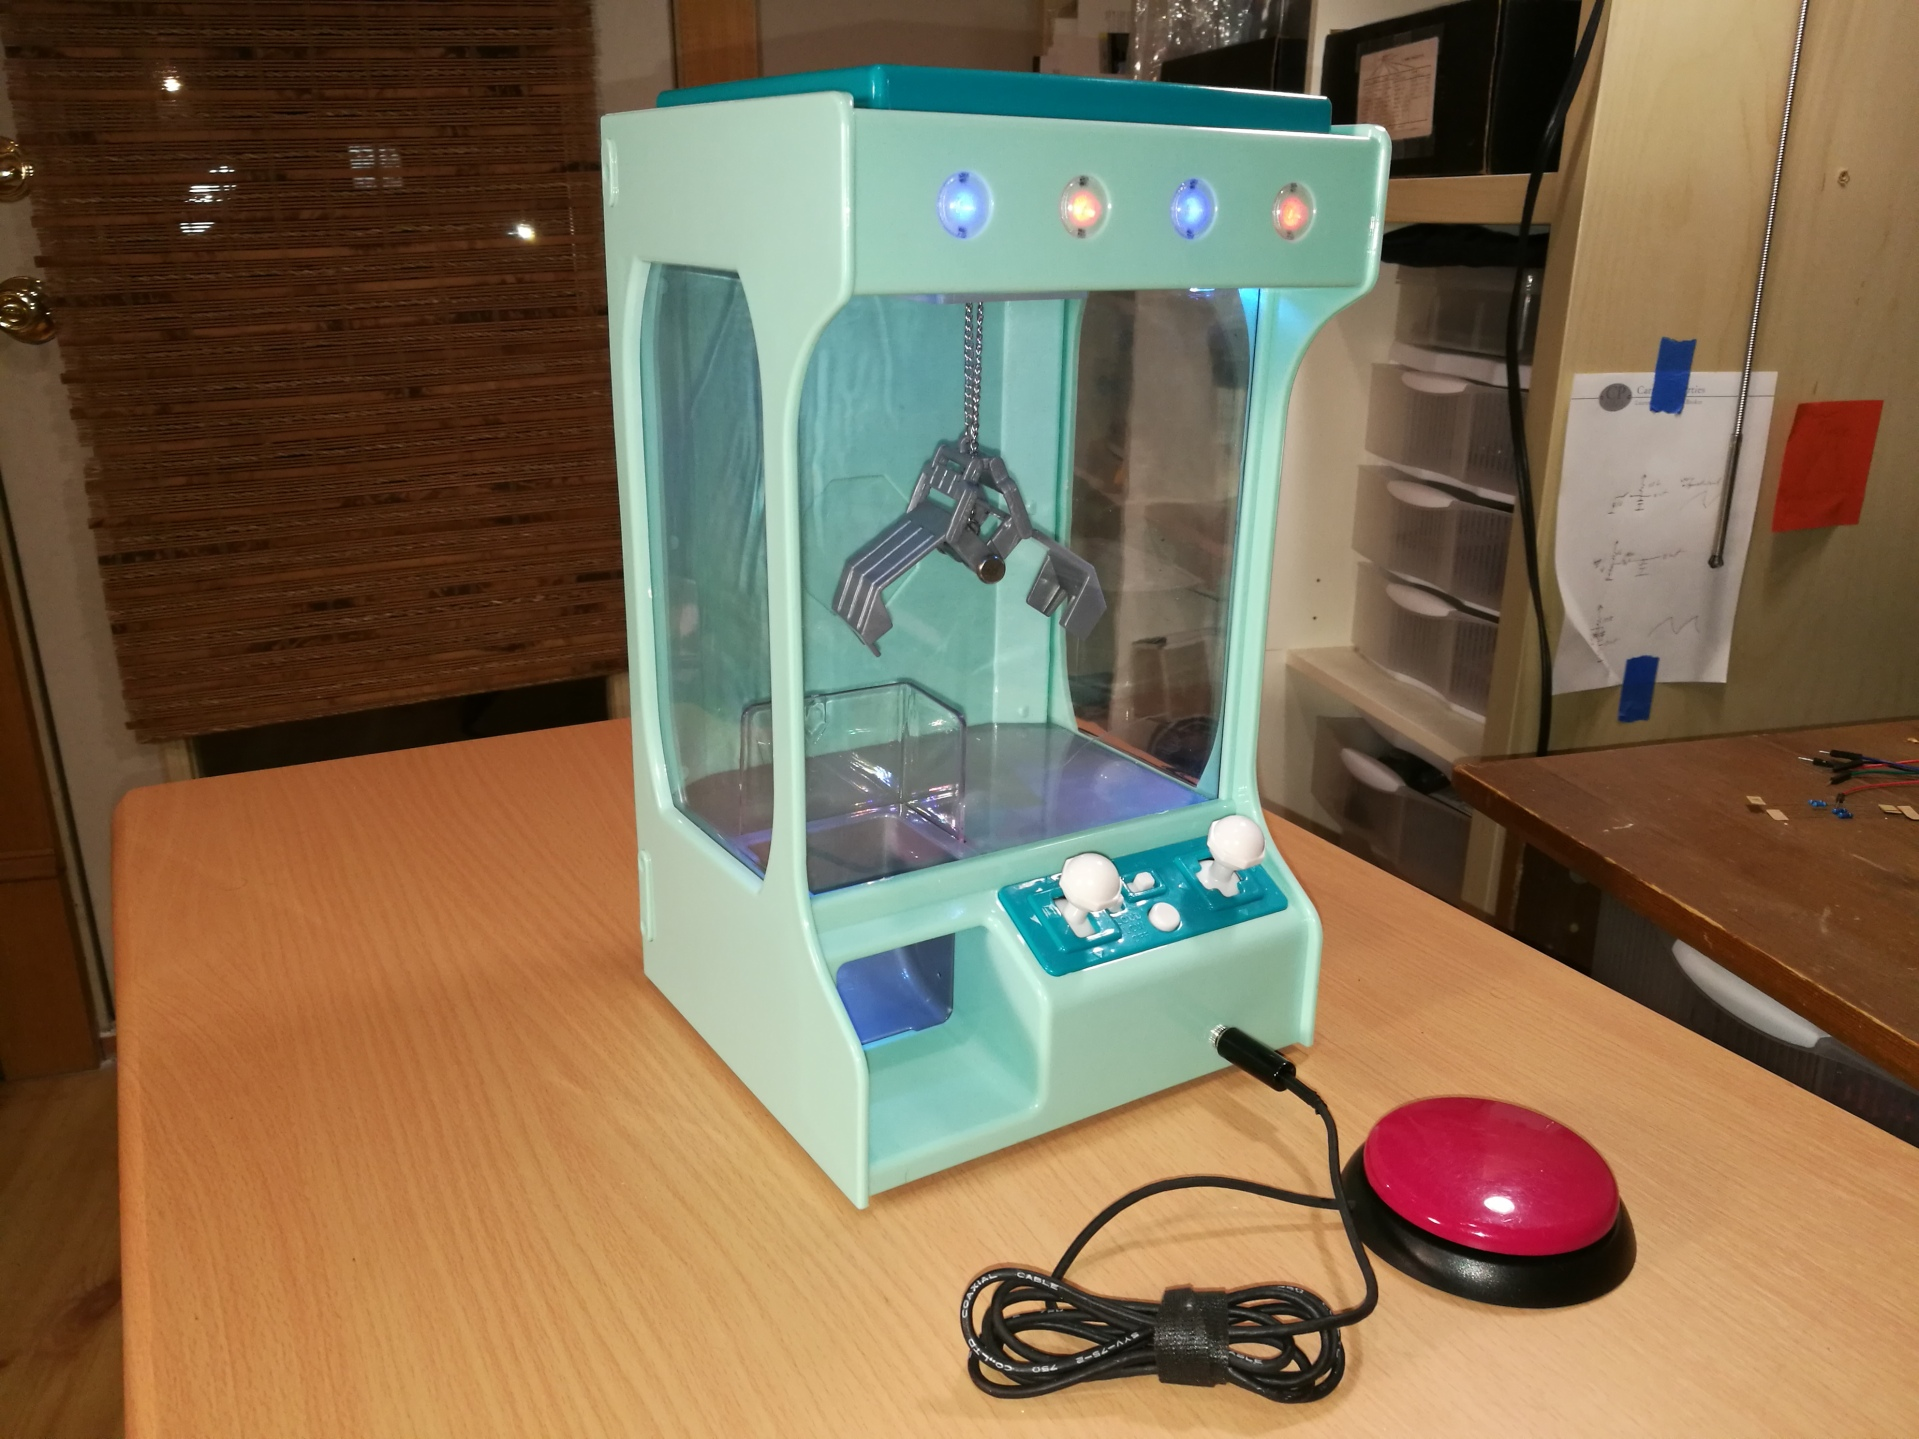 switch adapted claw crane game